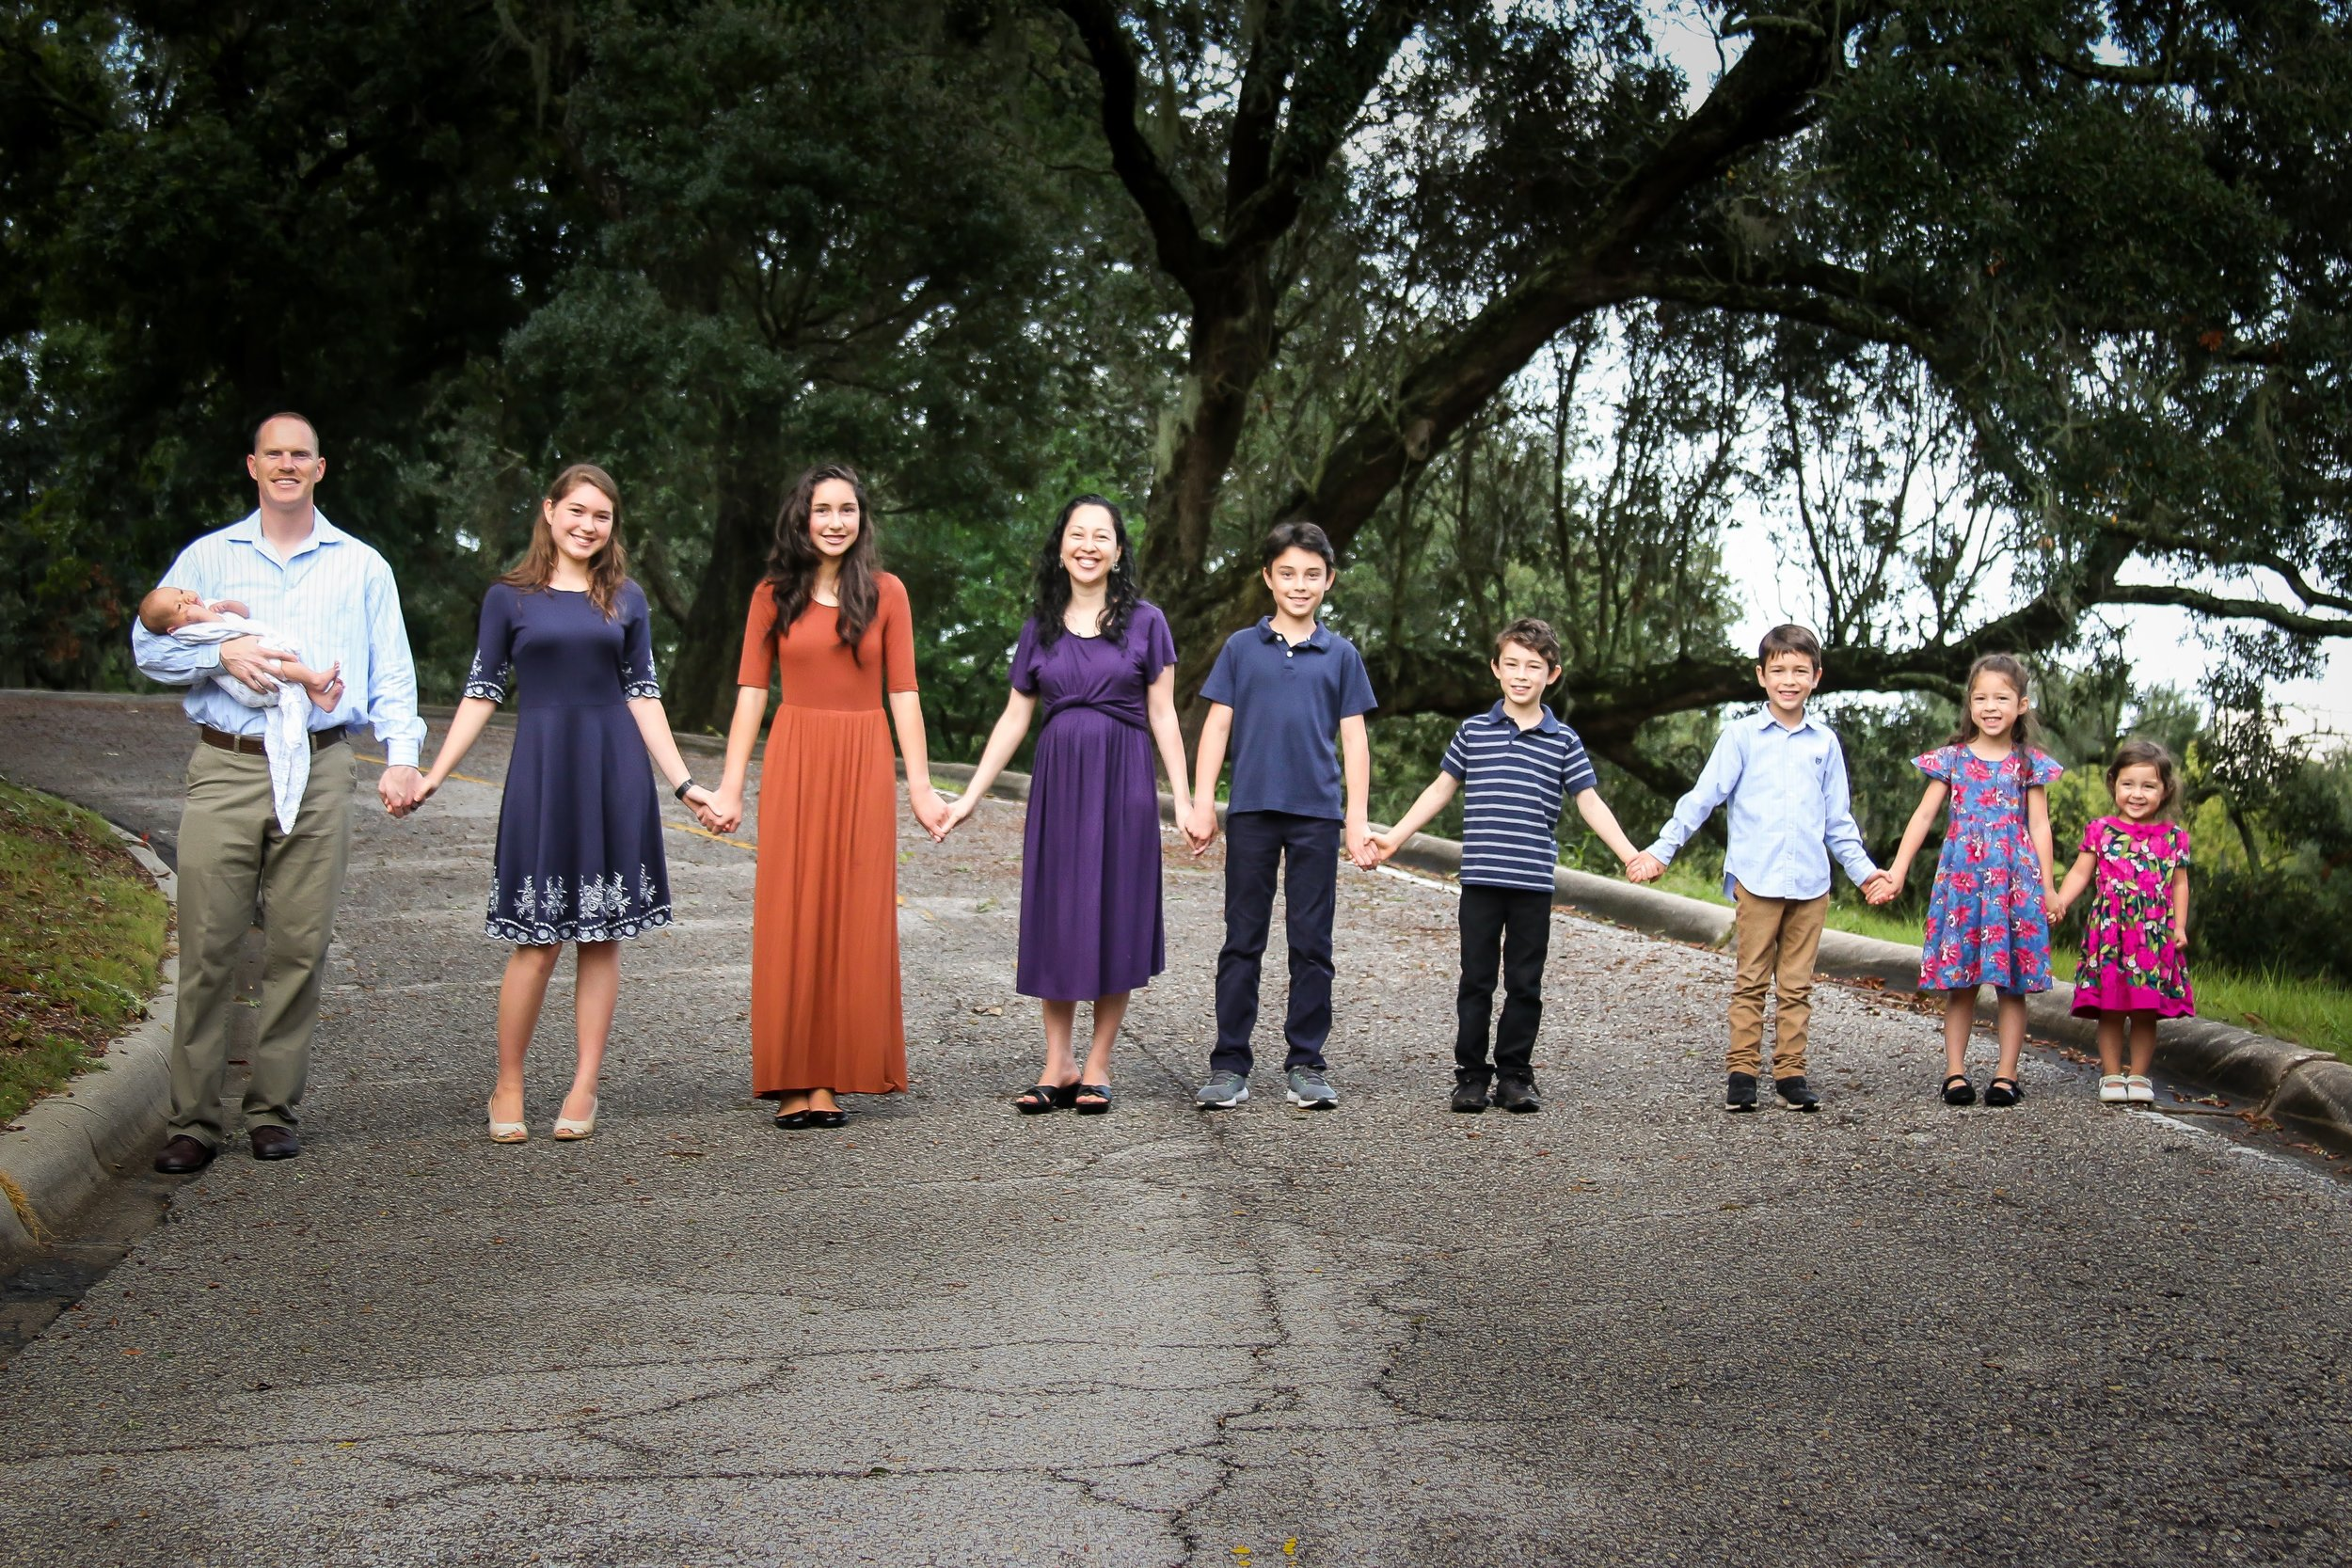 Tim and Franicia White and children at home in Pensacola, florida. Left to Right: baby gabriel, Tim, Heistheway, Pelaiah, Franicia, Abraham, Noah, Daniel, Shiloh, and priscilla. (Photography by america henry photography ) © 2018 tim & franicia